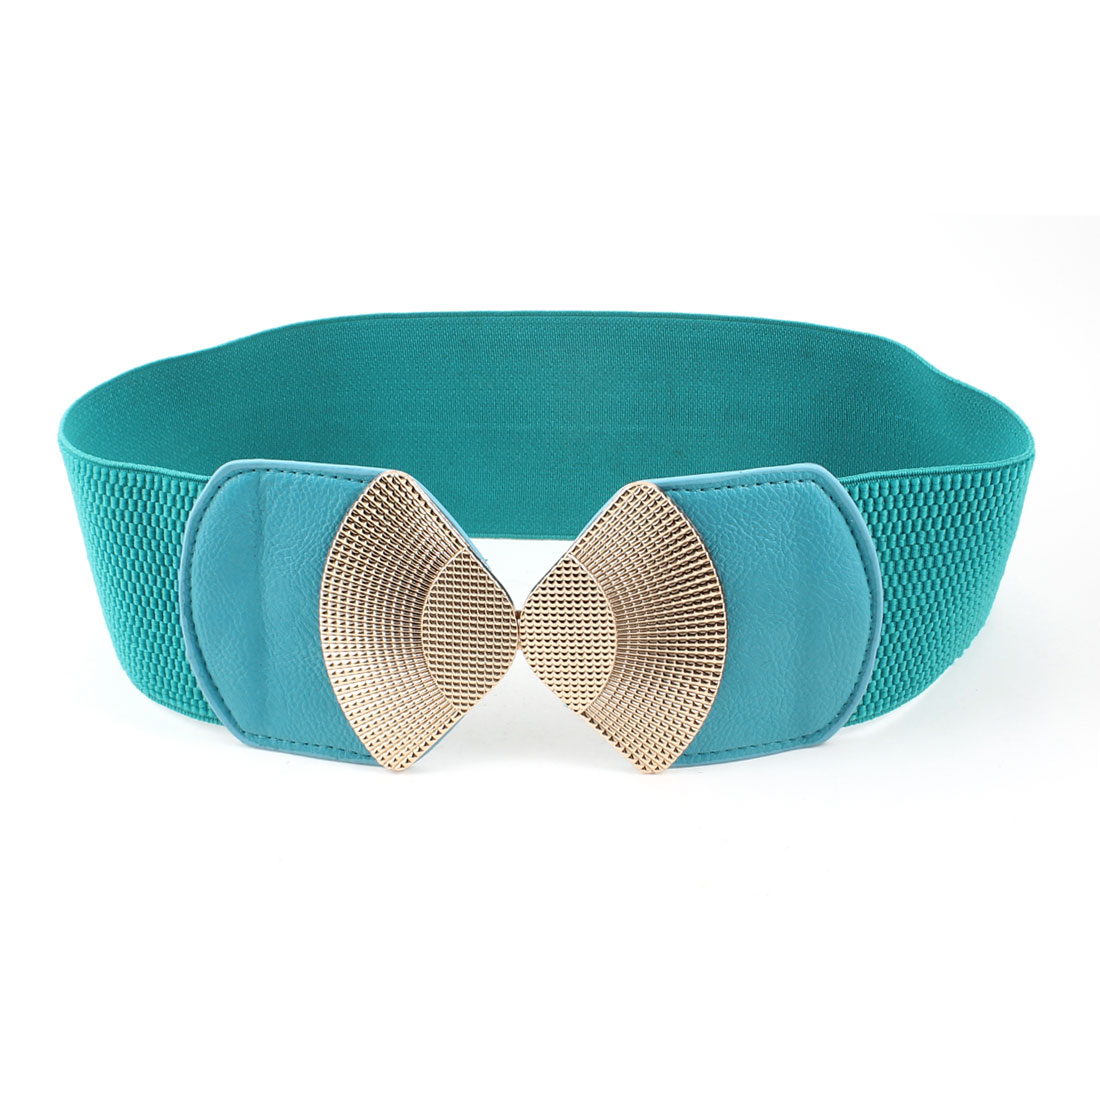 Lady Teal Green Metal Interlock Buckle Elastic Waist Band Belt